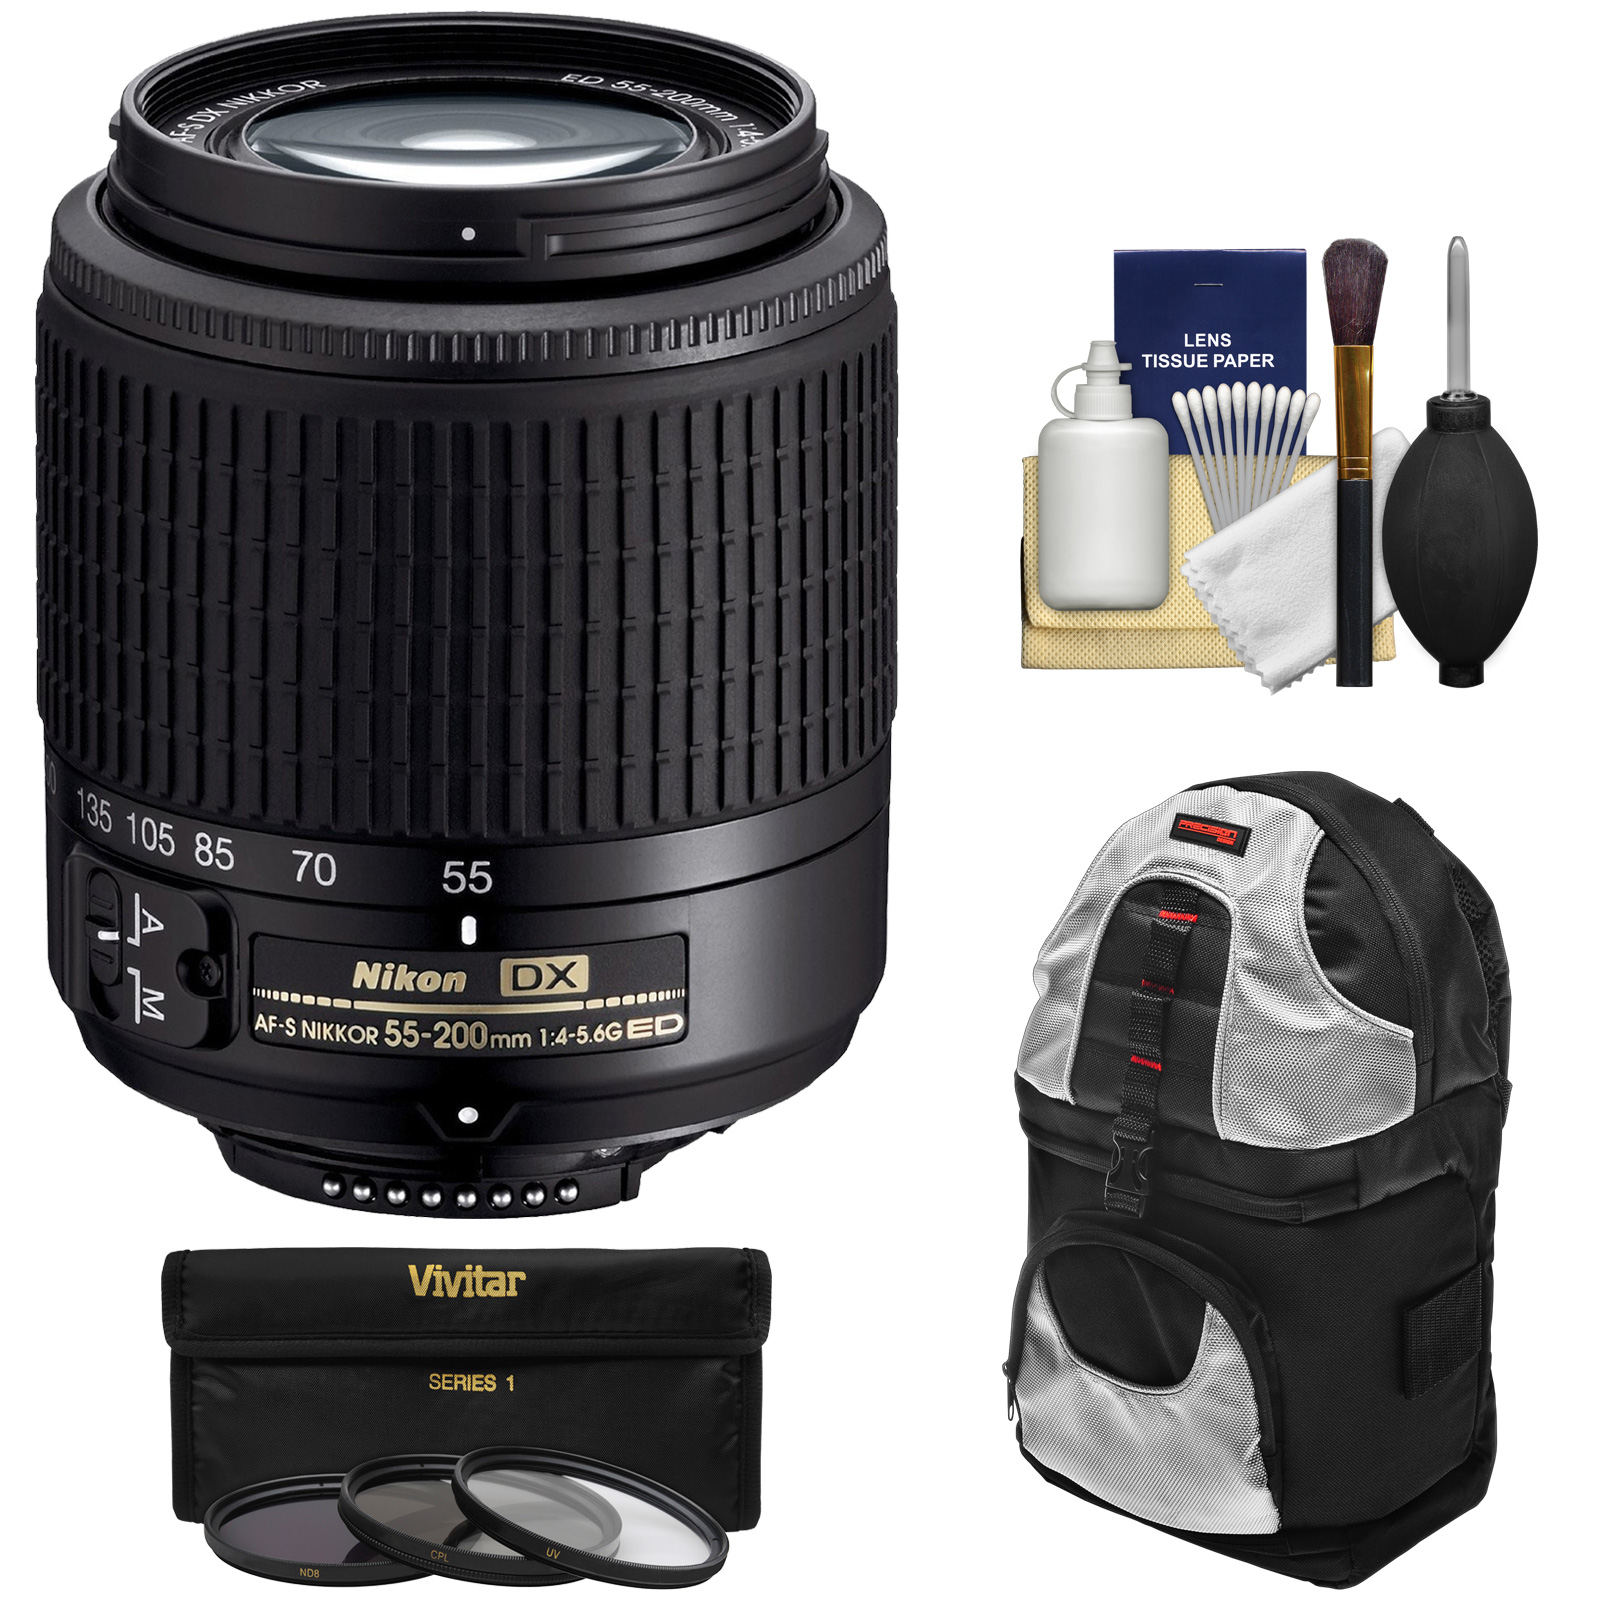 Nikon 55-200mm f/4-5.6G DX AF-S ED Zoom-Nikkor Lens with 3 UV/CPL/ND8 Filters + Backpack + Kit